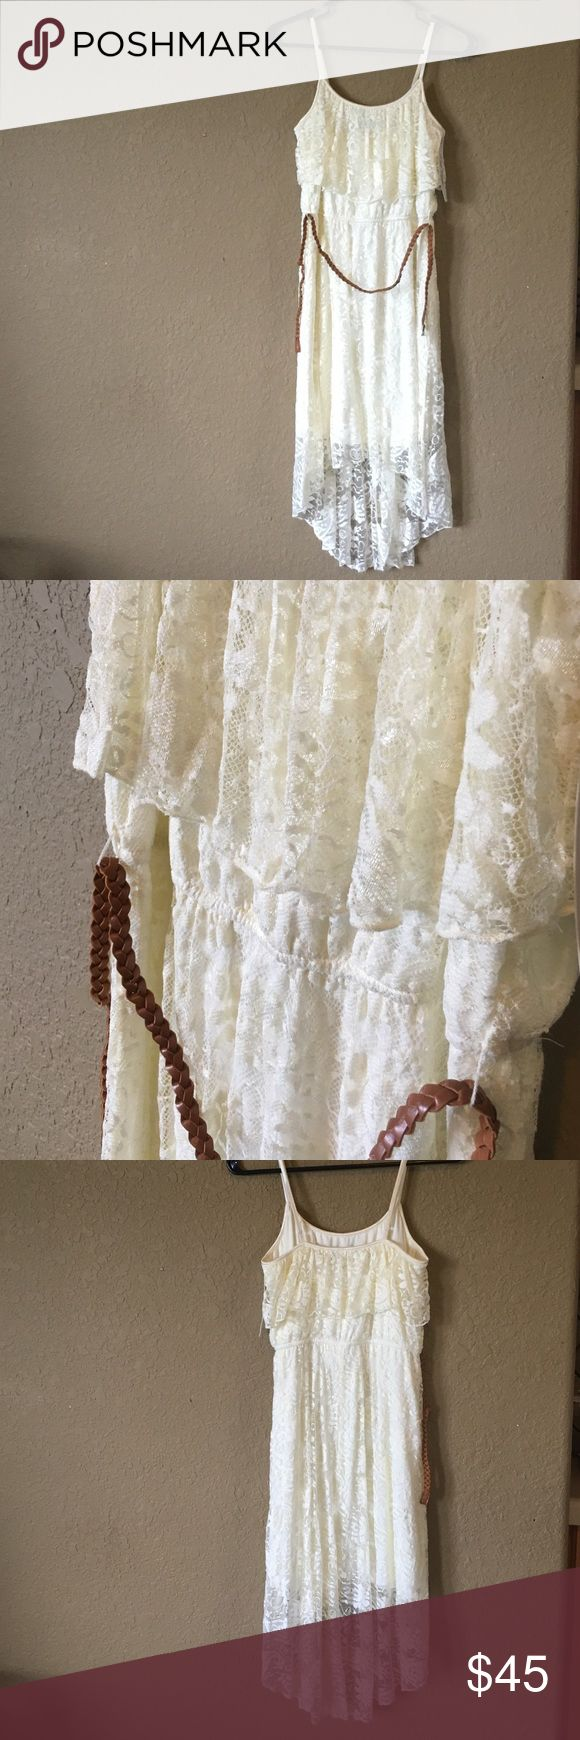 Cream Lace Dress Cream Lace Western Dress w/ belt. NWT! Pet and smoke free home. Size medium. Love Reign Other